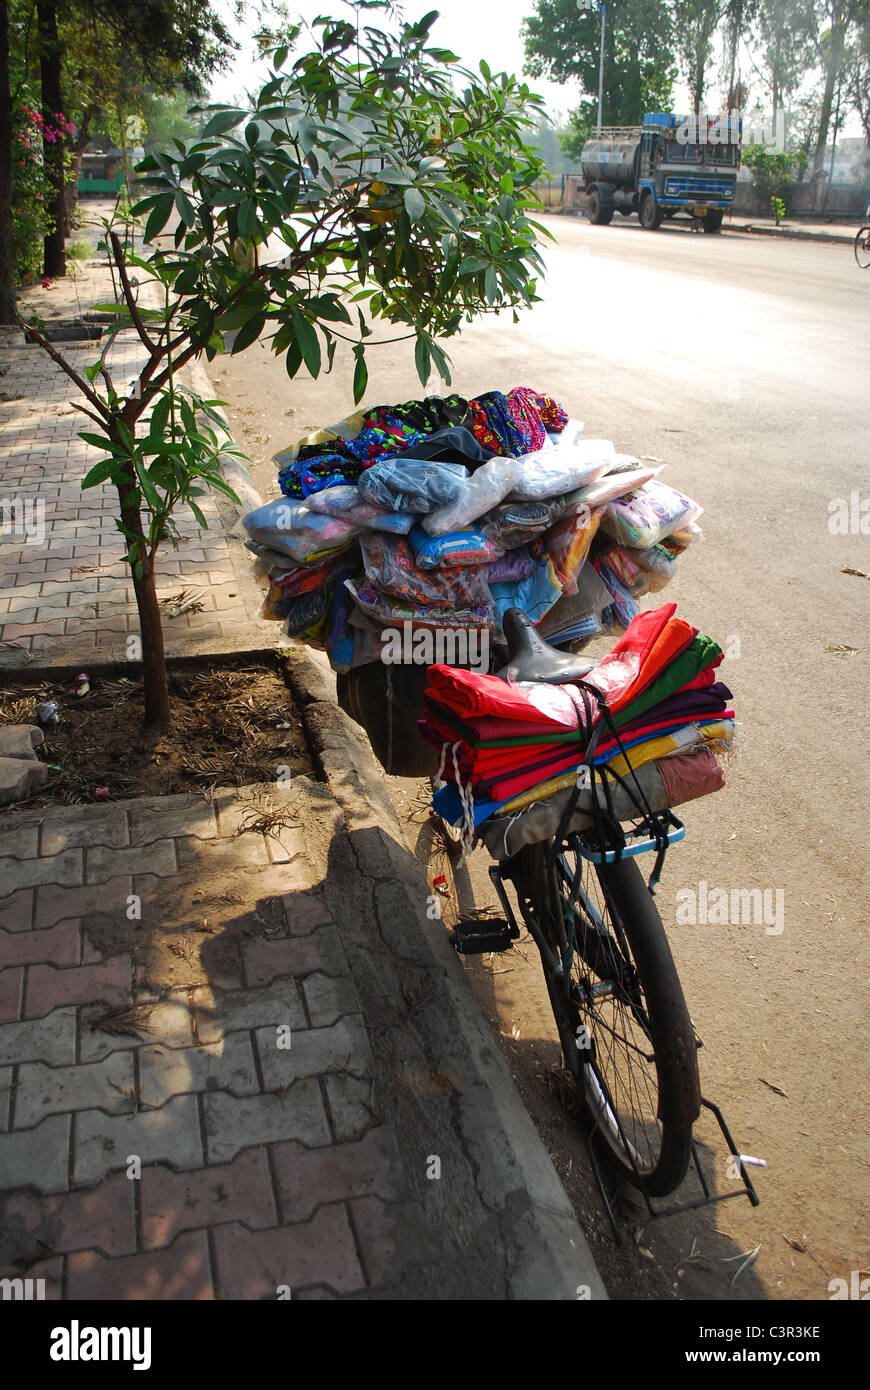 mobile cycle cloth shop - Stock Image